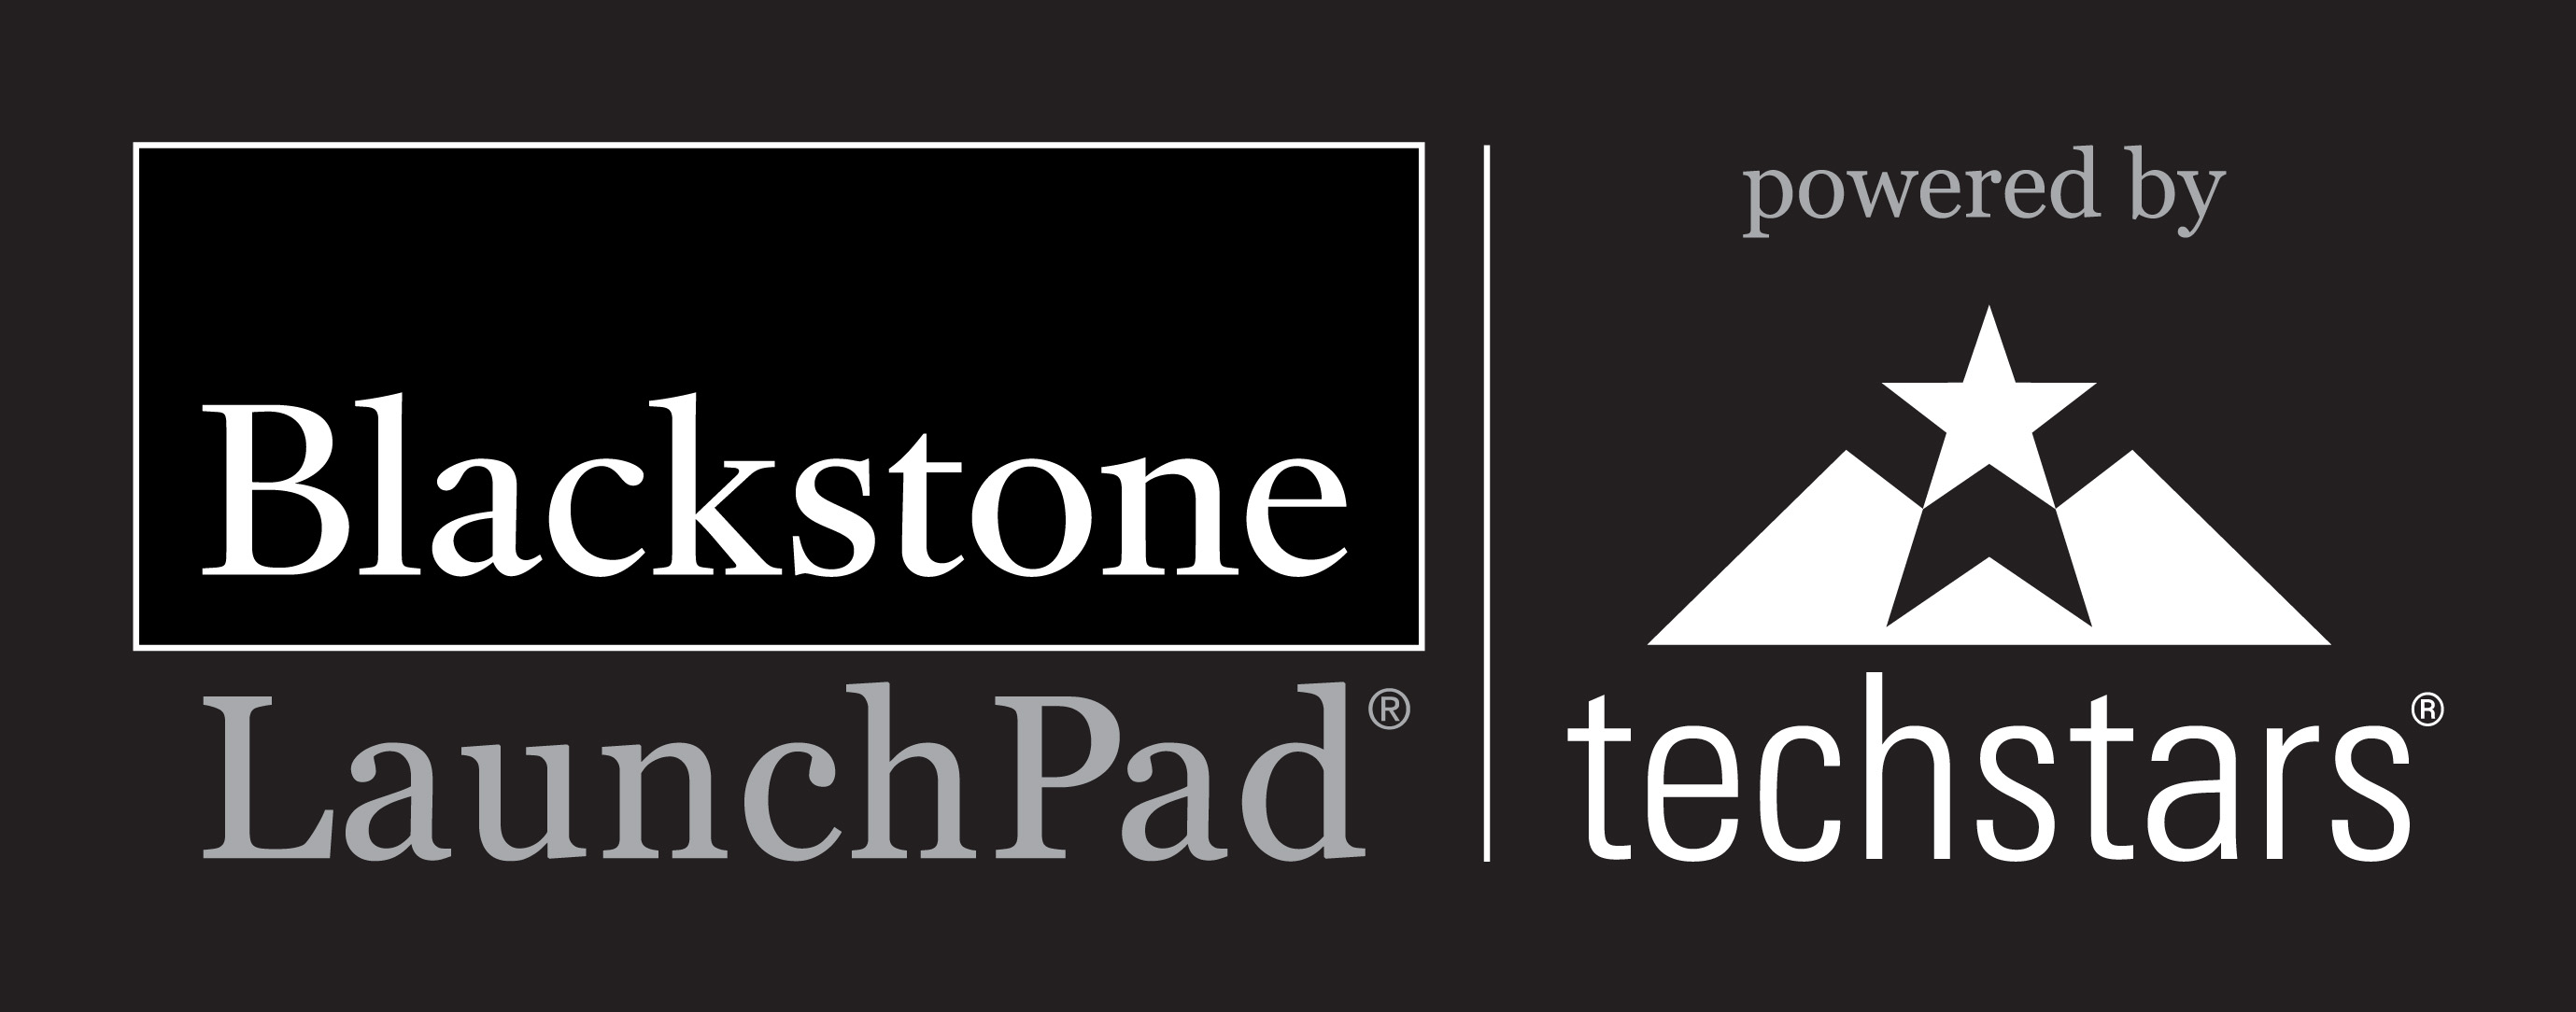 Blackstone LaunchPad at University of Montana Logo